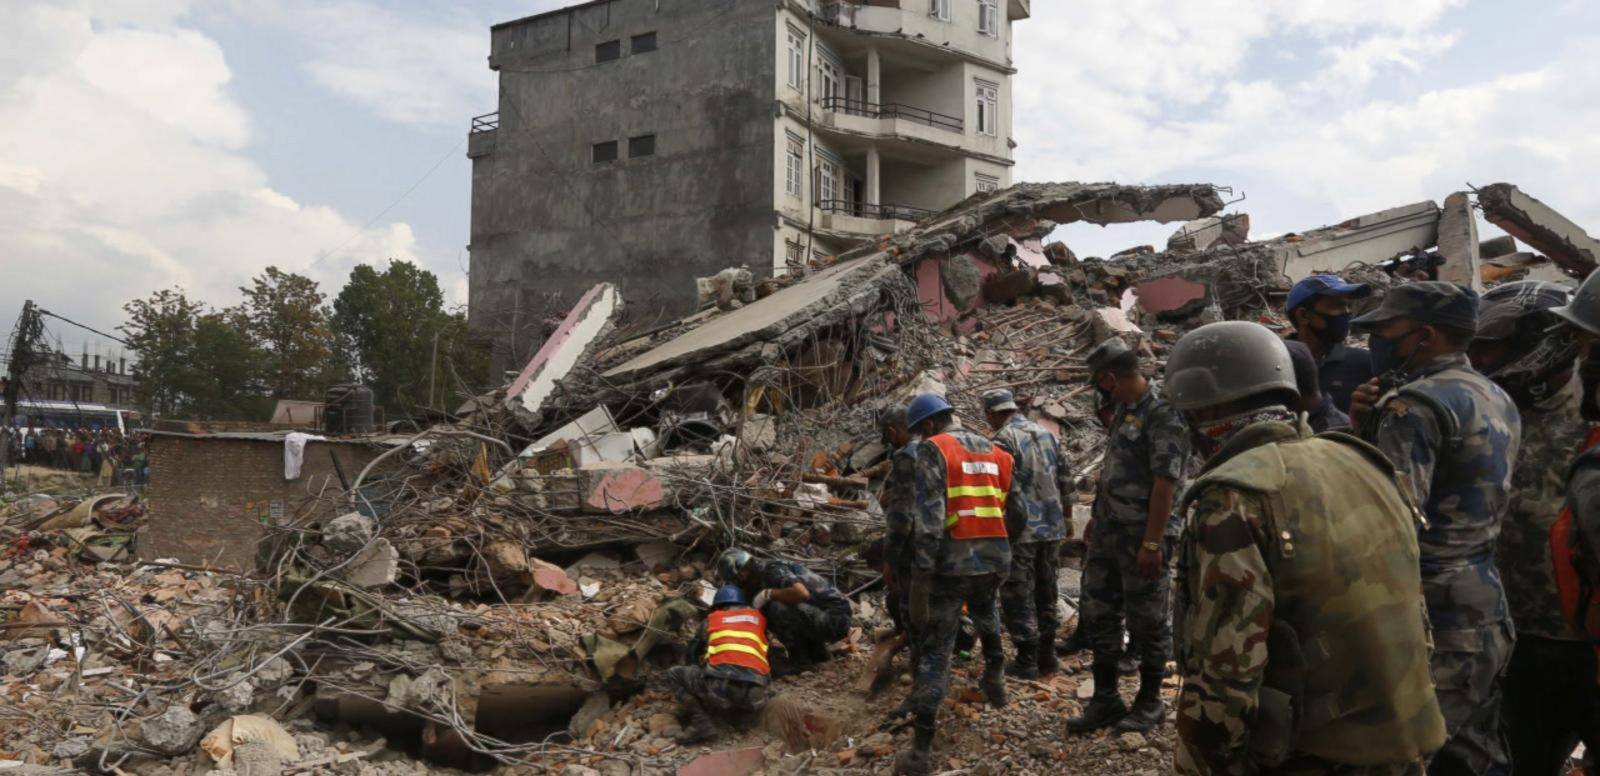 VIDEO: At Least 3 Americans Among Thousands Dead in Nepal Earthquake